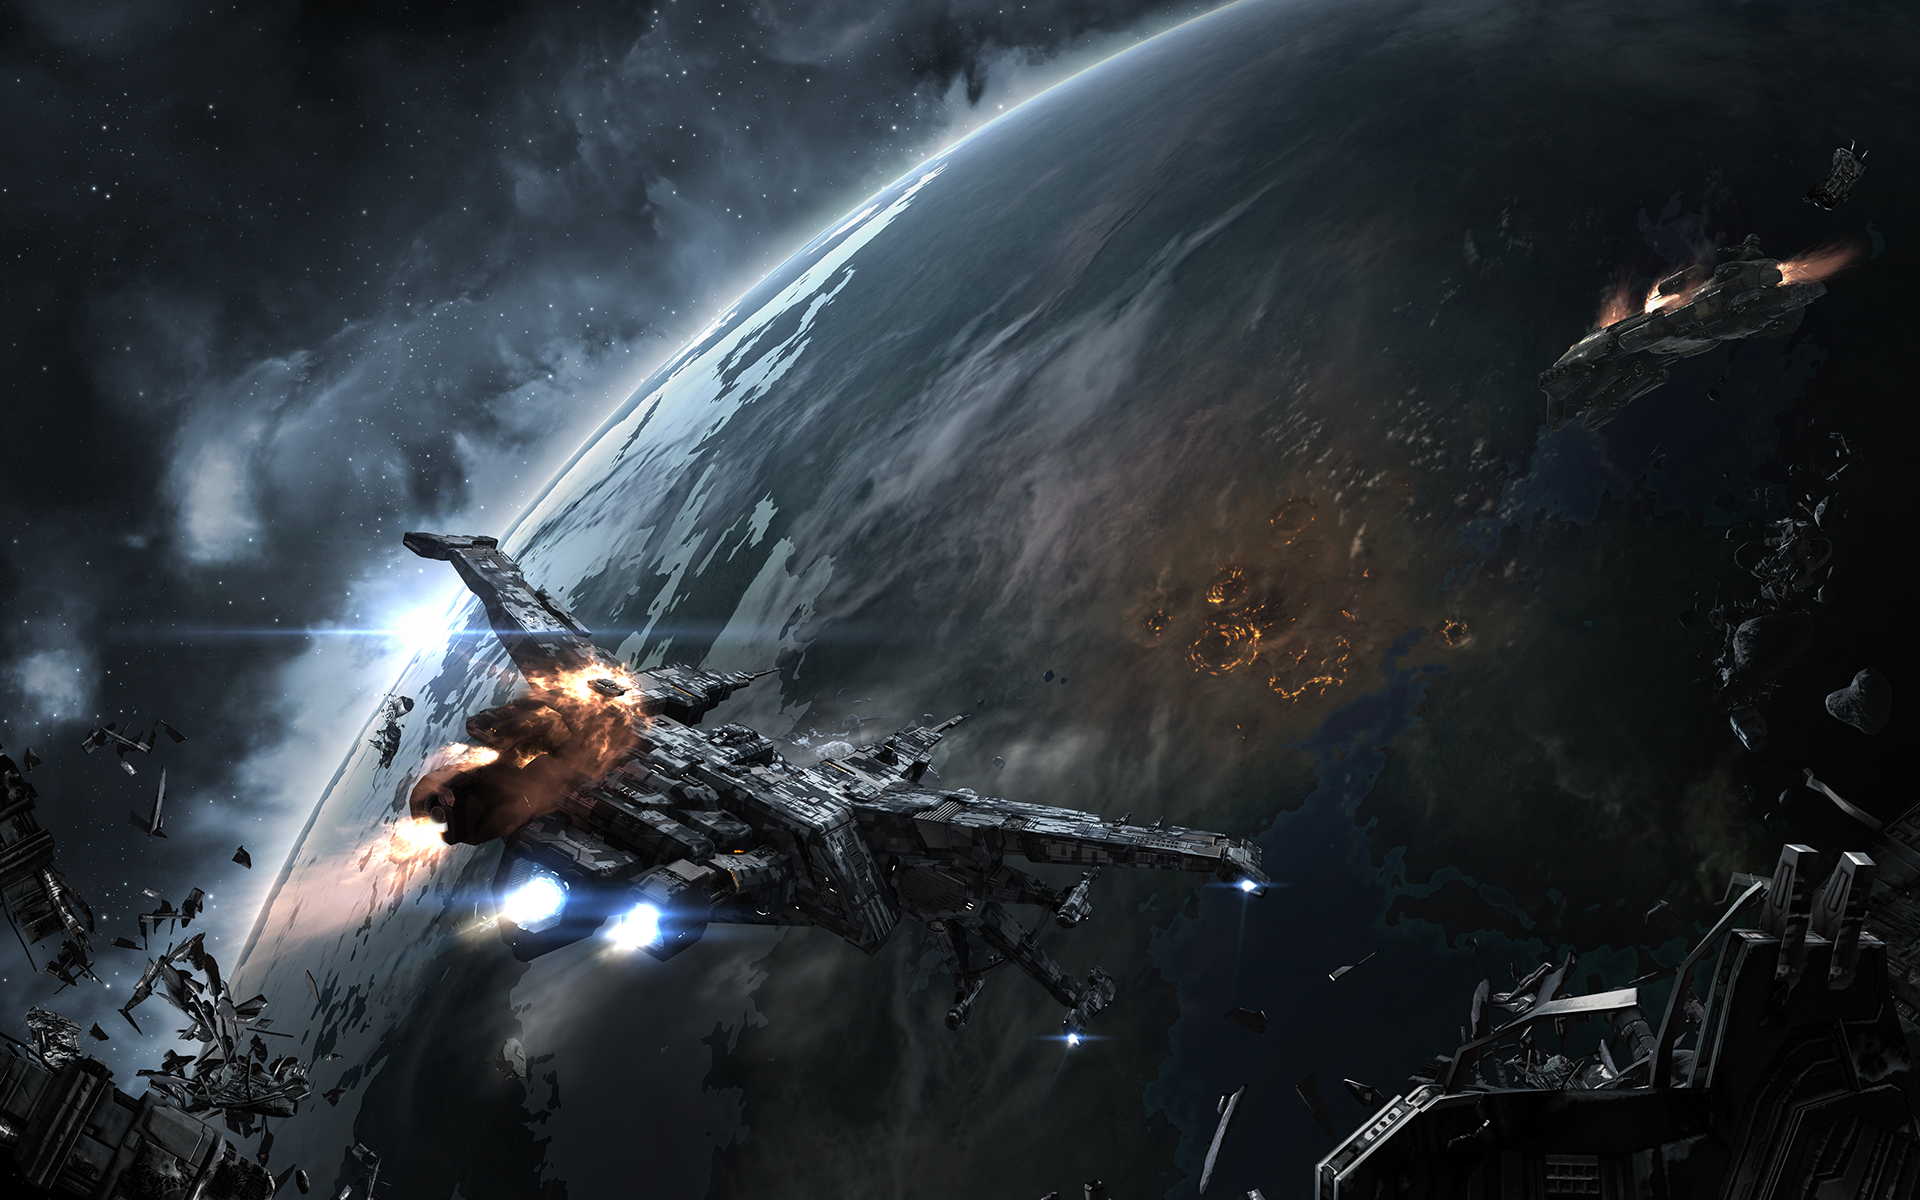 Epic Space Battle Background Epic space battle background 1920x1200